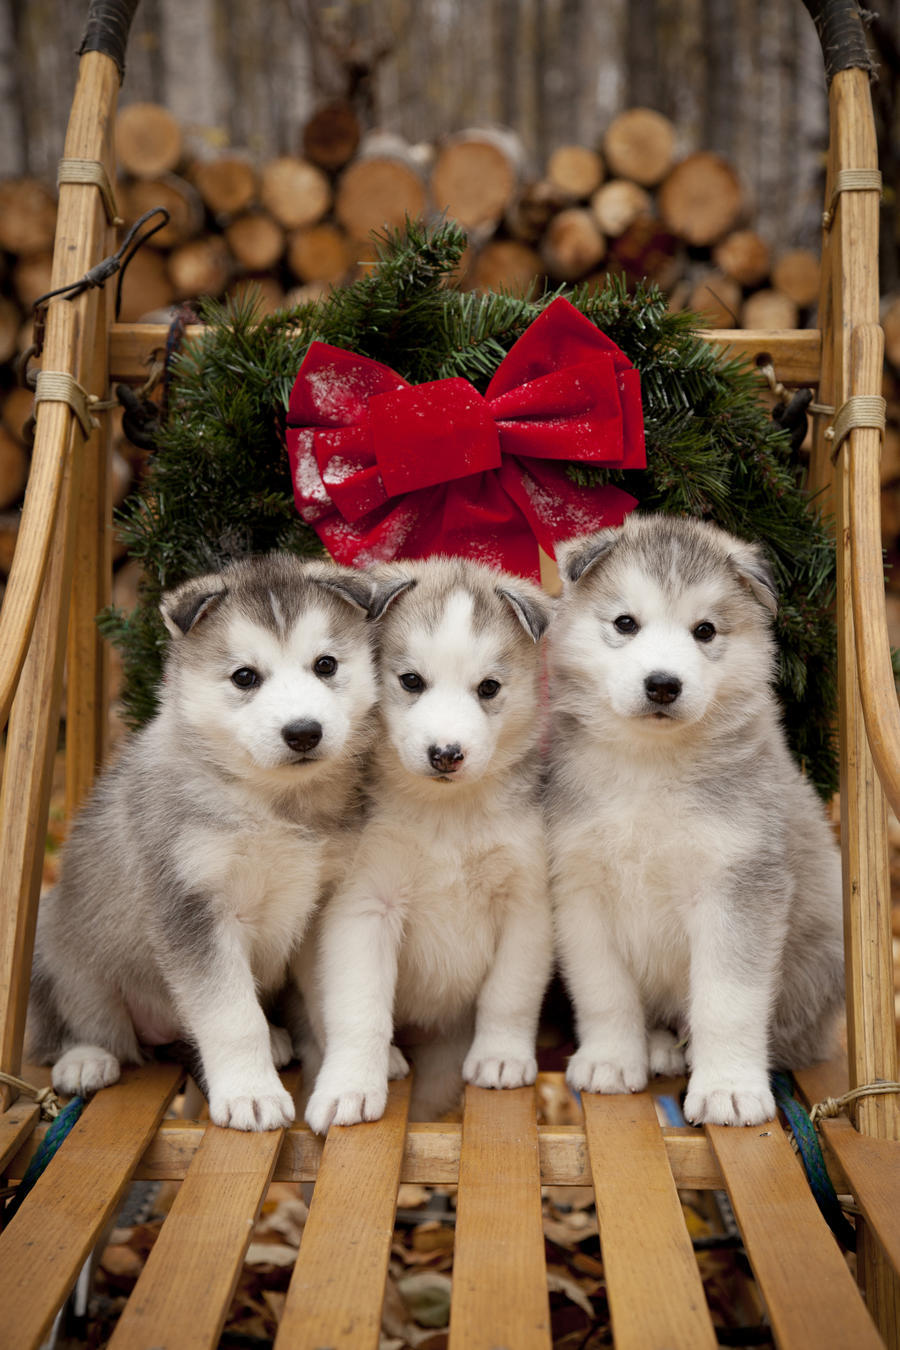 siberian husky puppies in traditional wooden dog sled with christmas